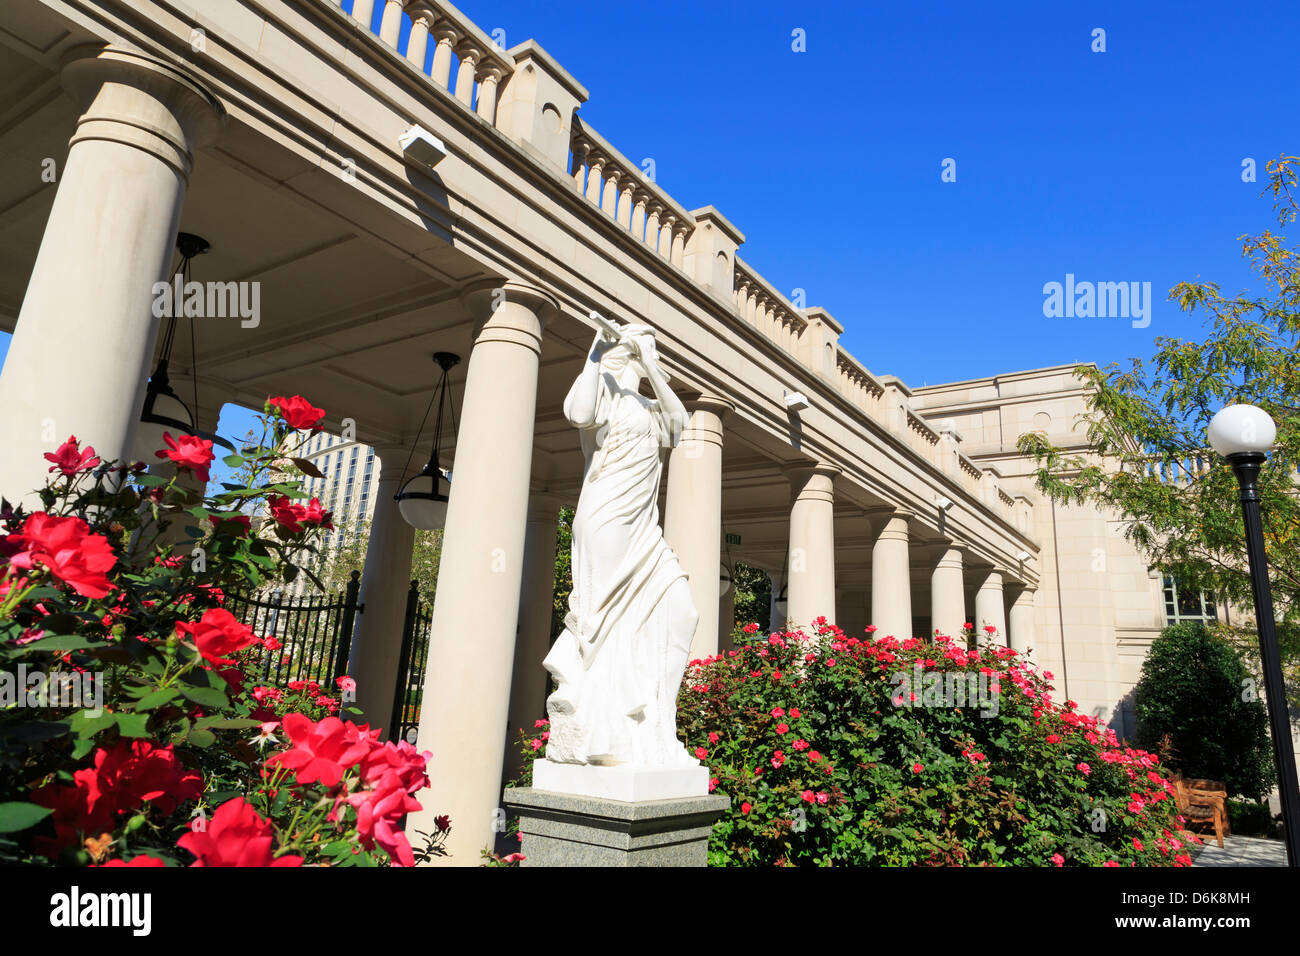 Schermerhorn Symphony Hall, Nashville, Tennessee, United States of America, North America - Stock Image